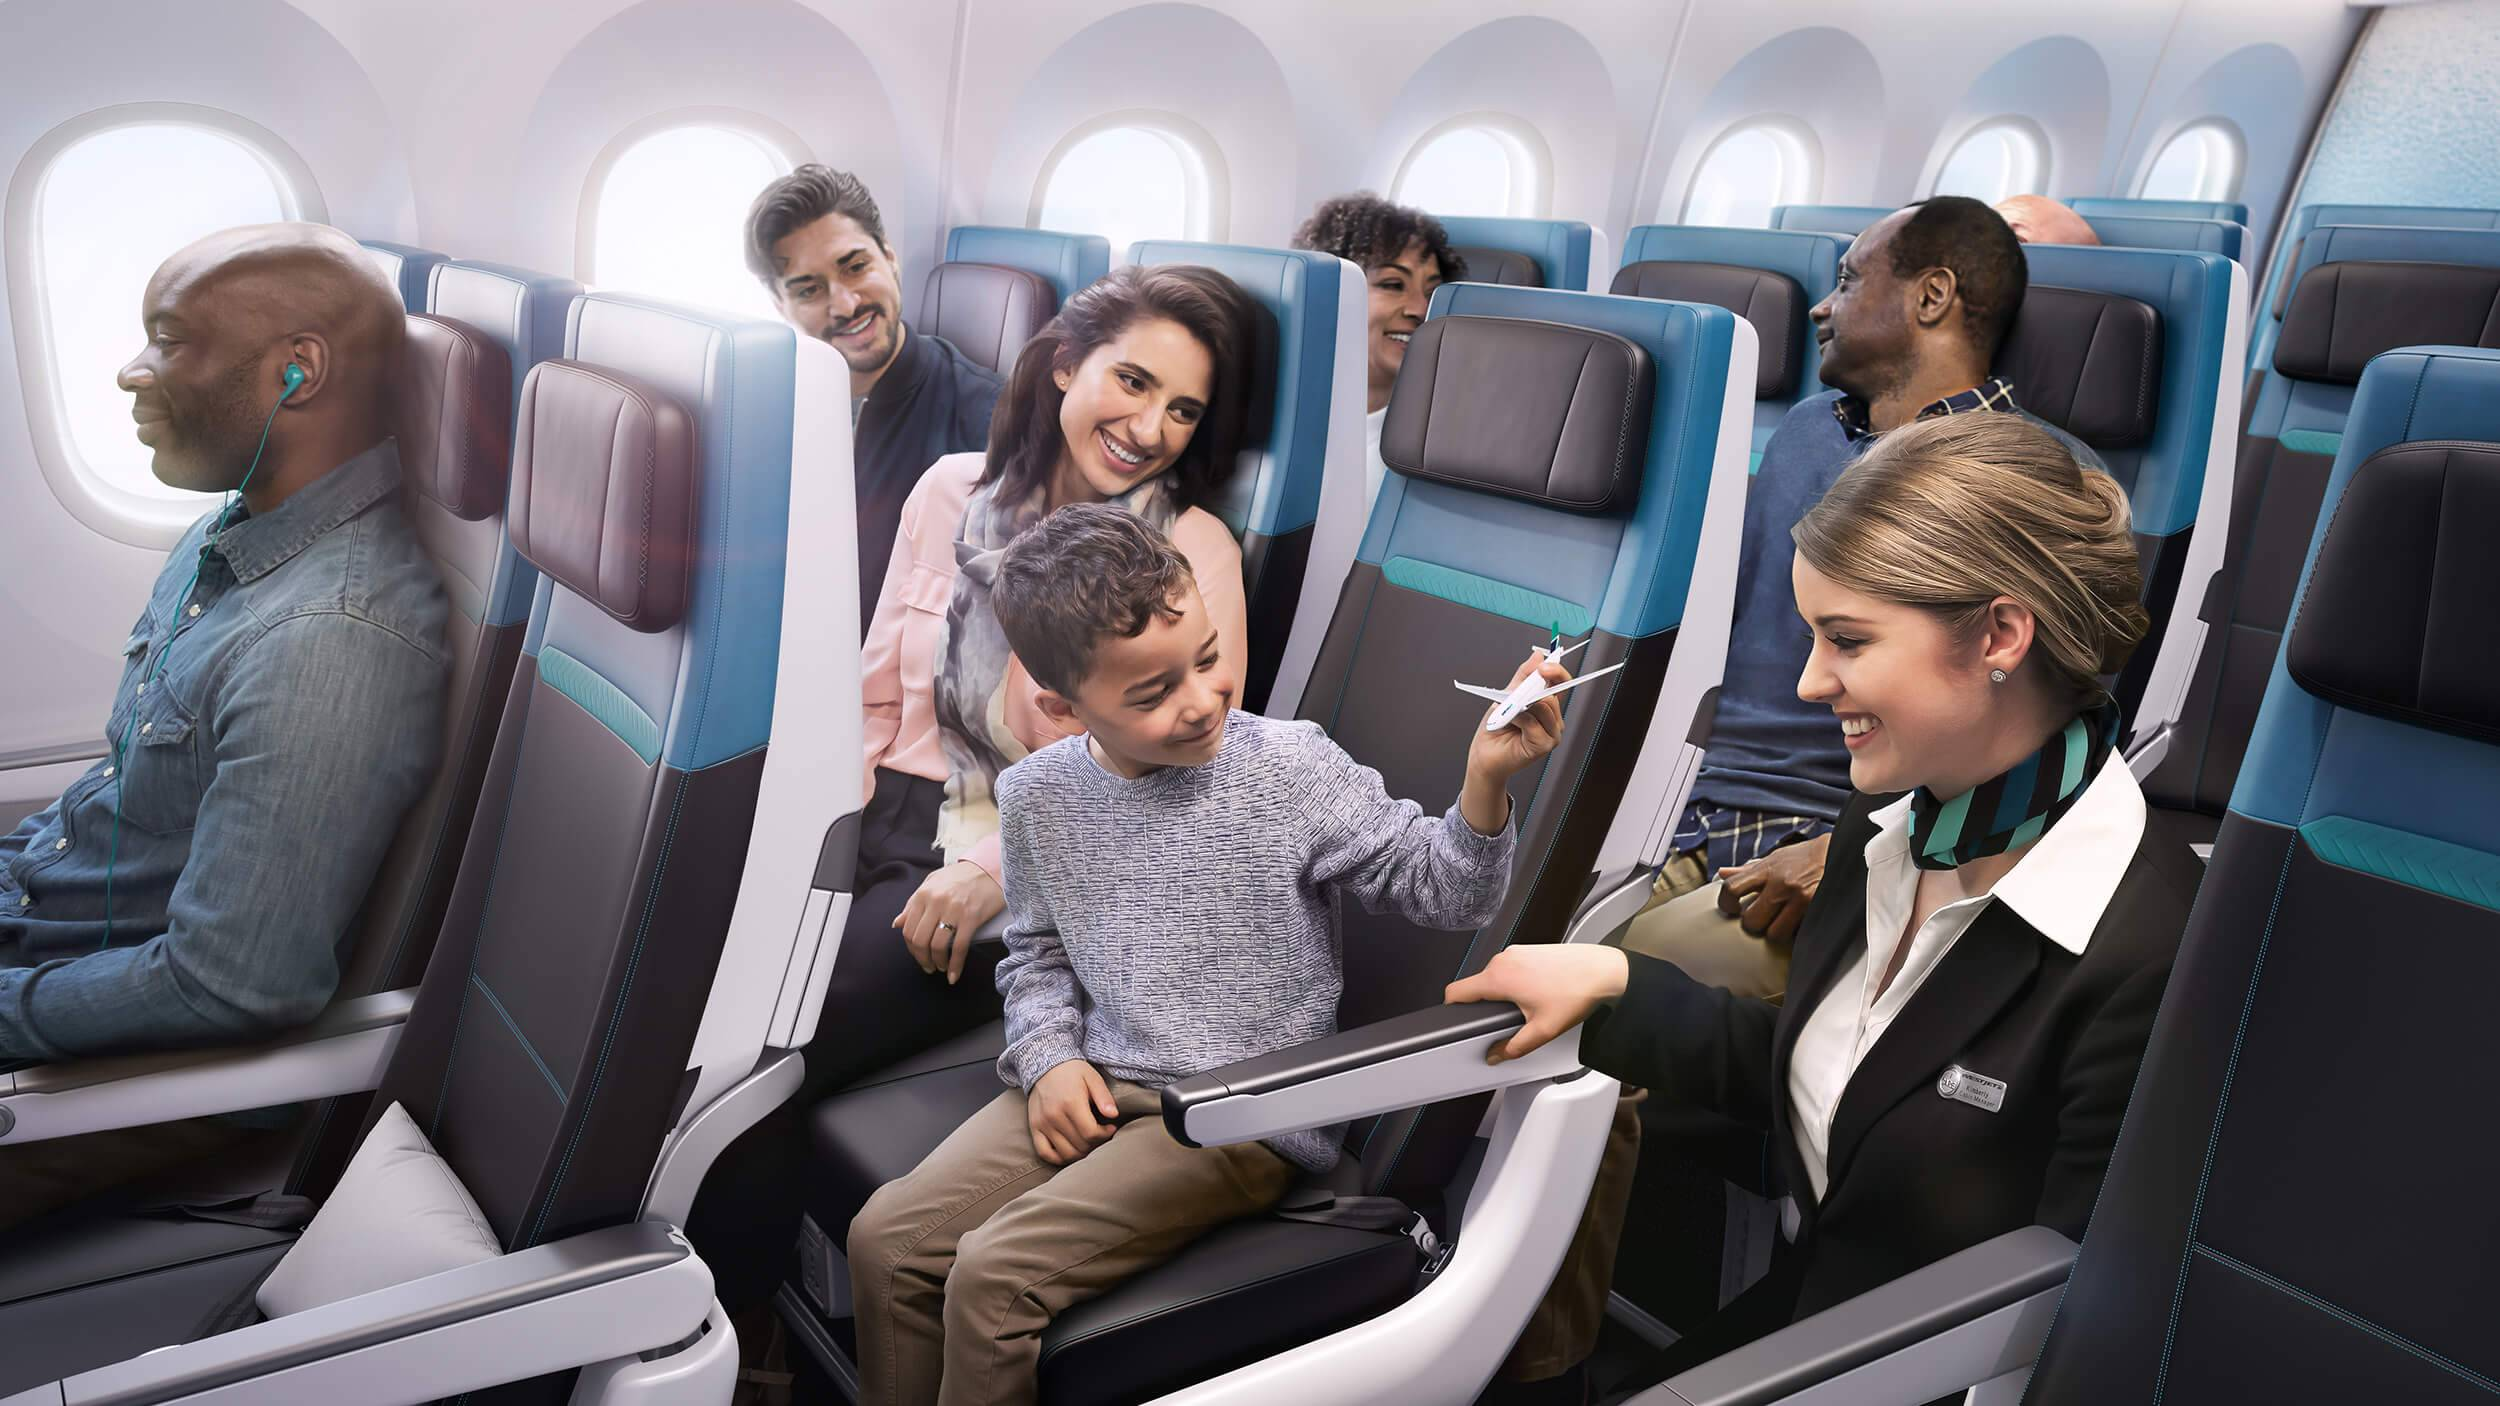 Smiling passengers relaxed in their seats in the WestJet 787 Economy Class cabin